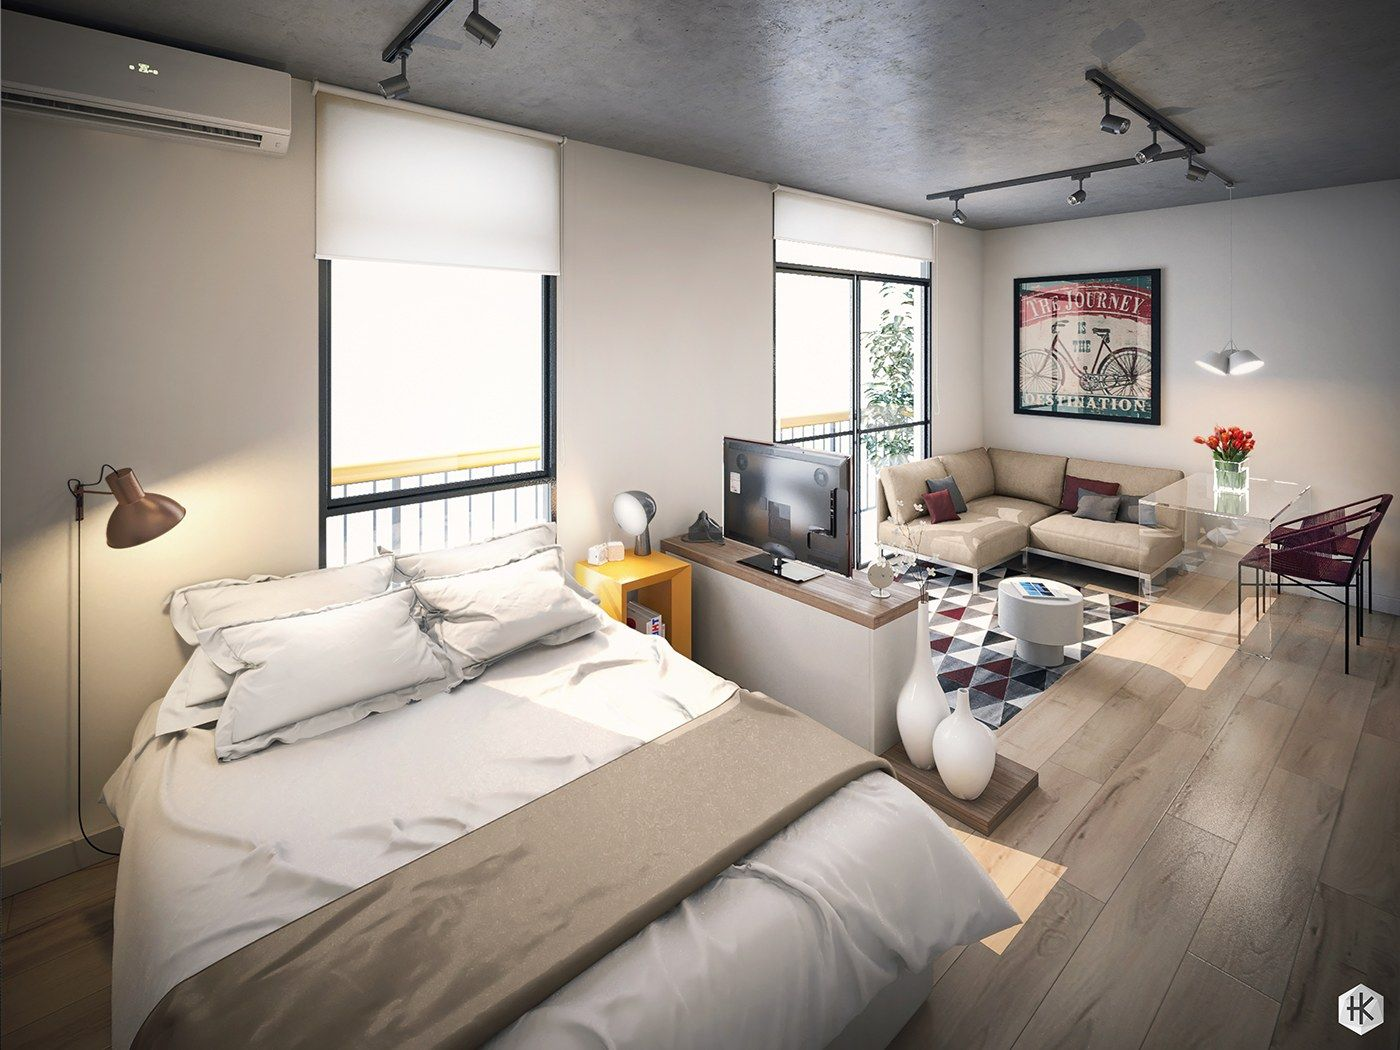 5 small studio apartments with beautiful design on stunning minimalist apartment décor ideas home decor for your small apartment id=31661